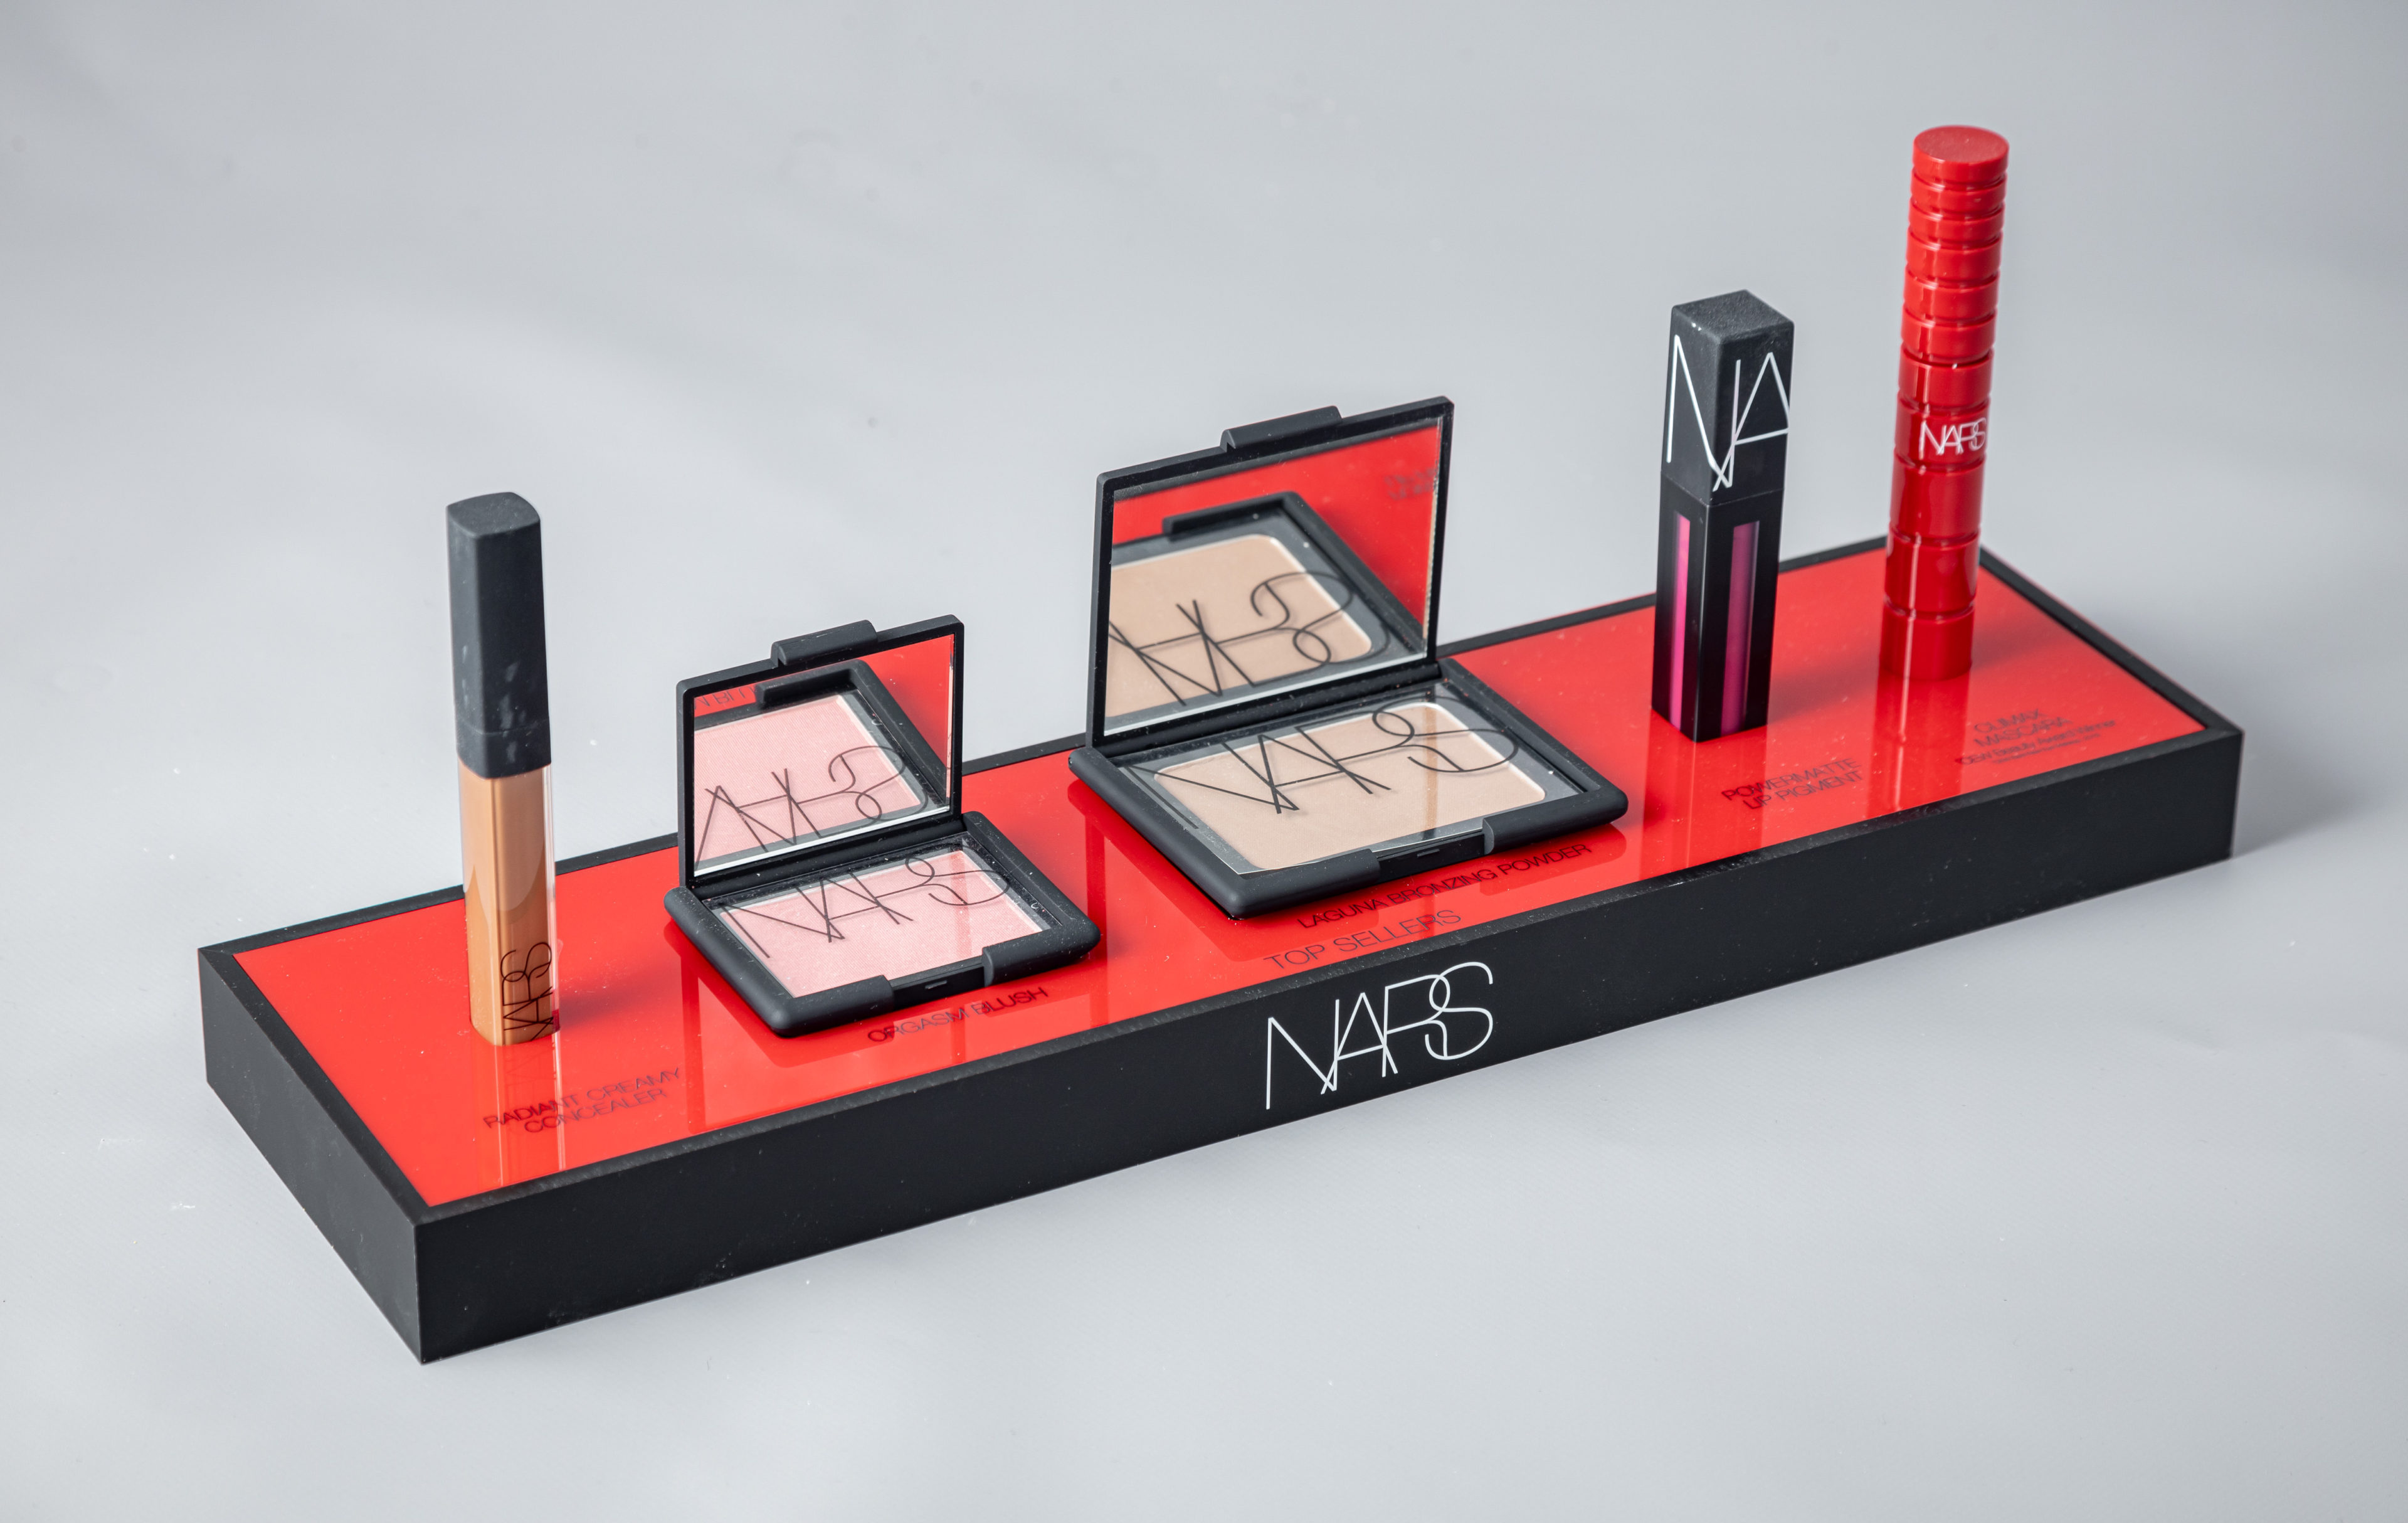 NARS makeup display stand